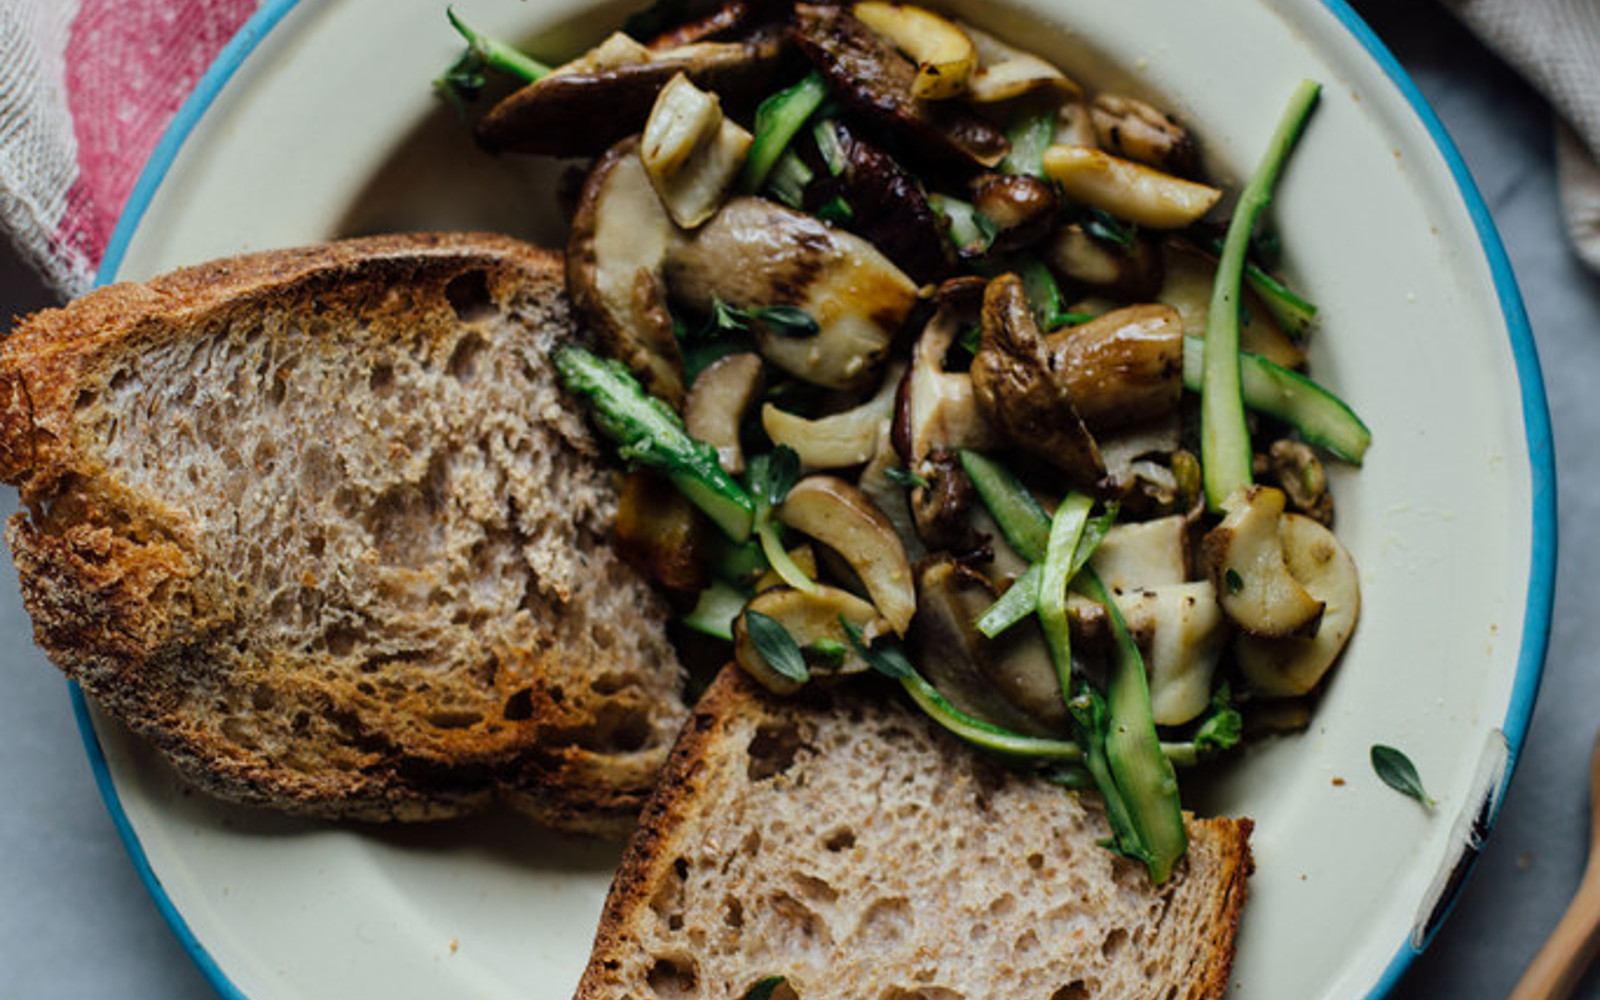 Buttery Porcini Mushrooms and Asparagus on Toast